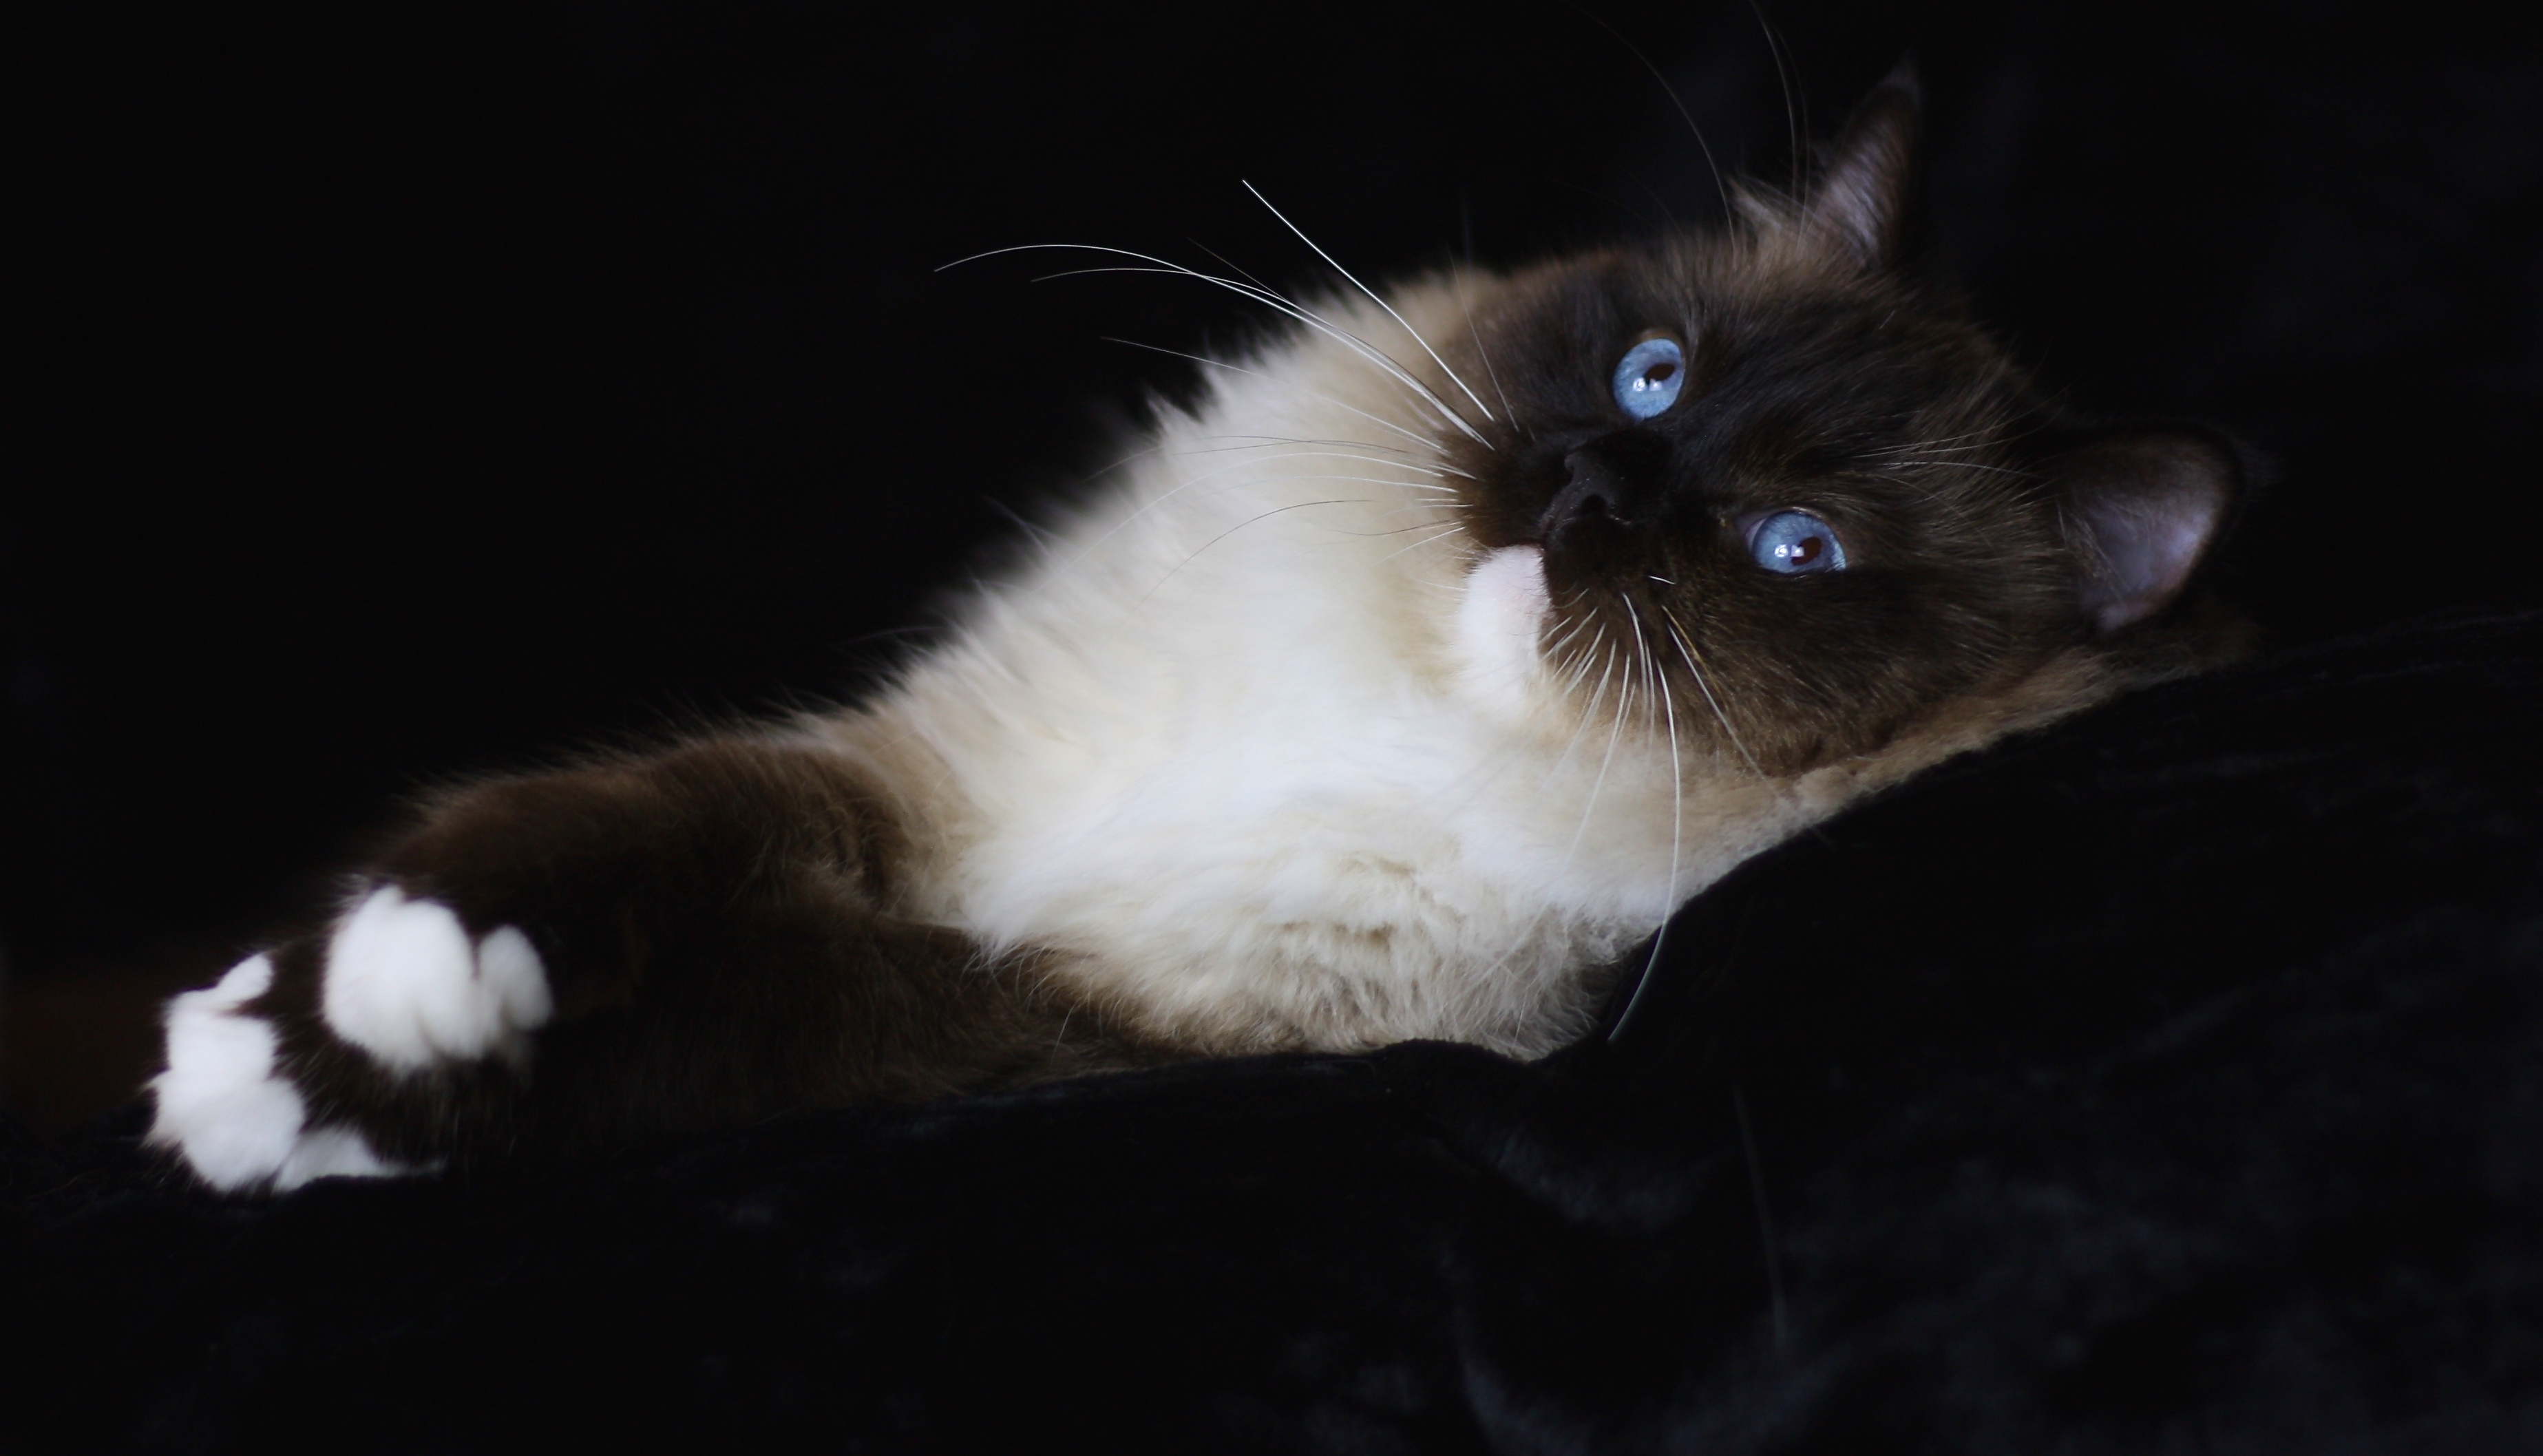 RAGDOLL KITTENS for sale in DEVON http://osochicragdolls.co.uk .*copyright owned by OSOCHIC RAGDOLLS